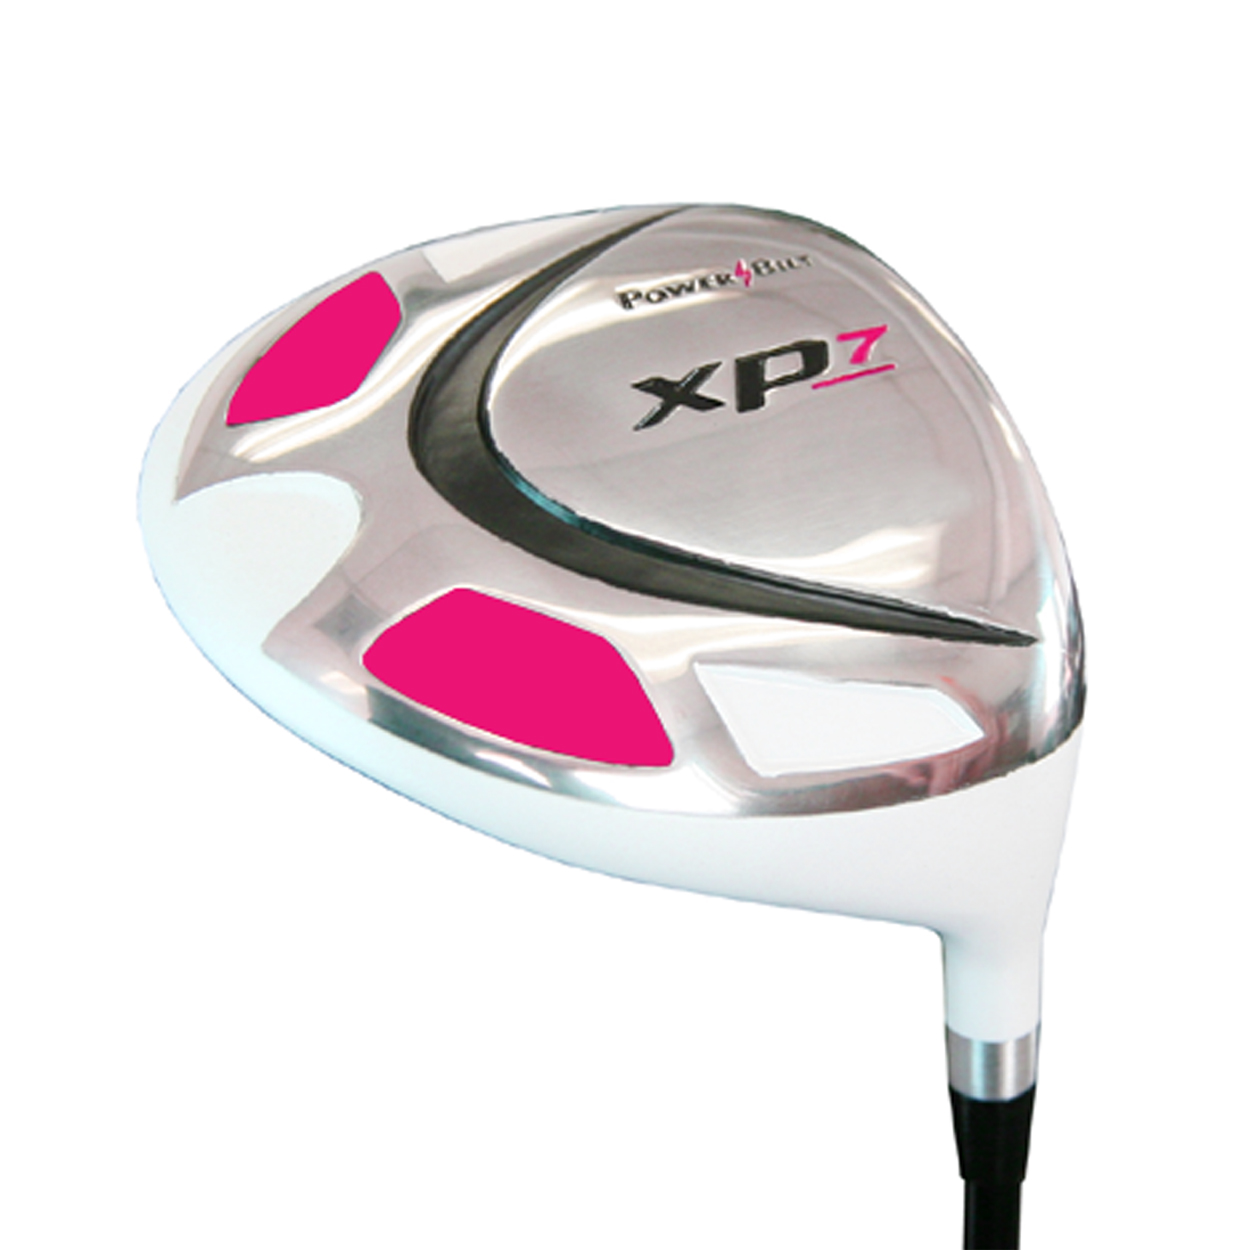 Powerbilt Women's XP7...